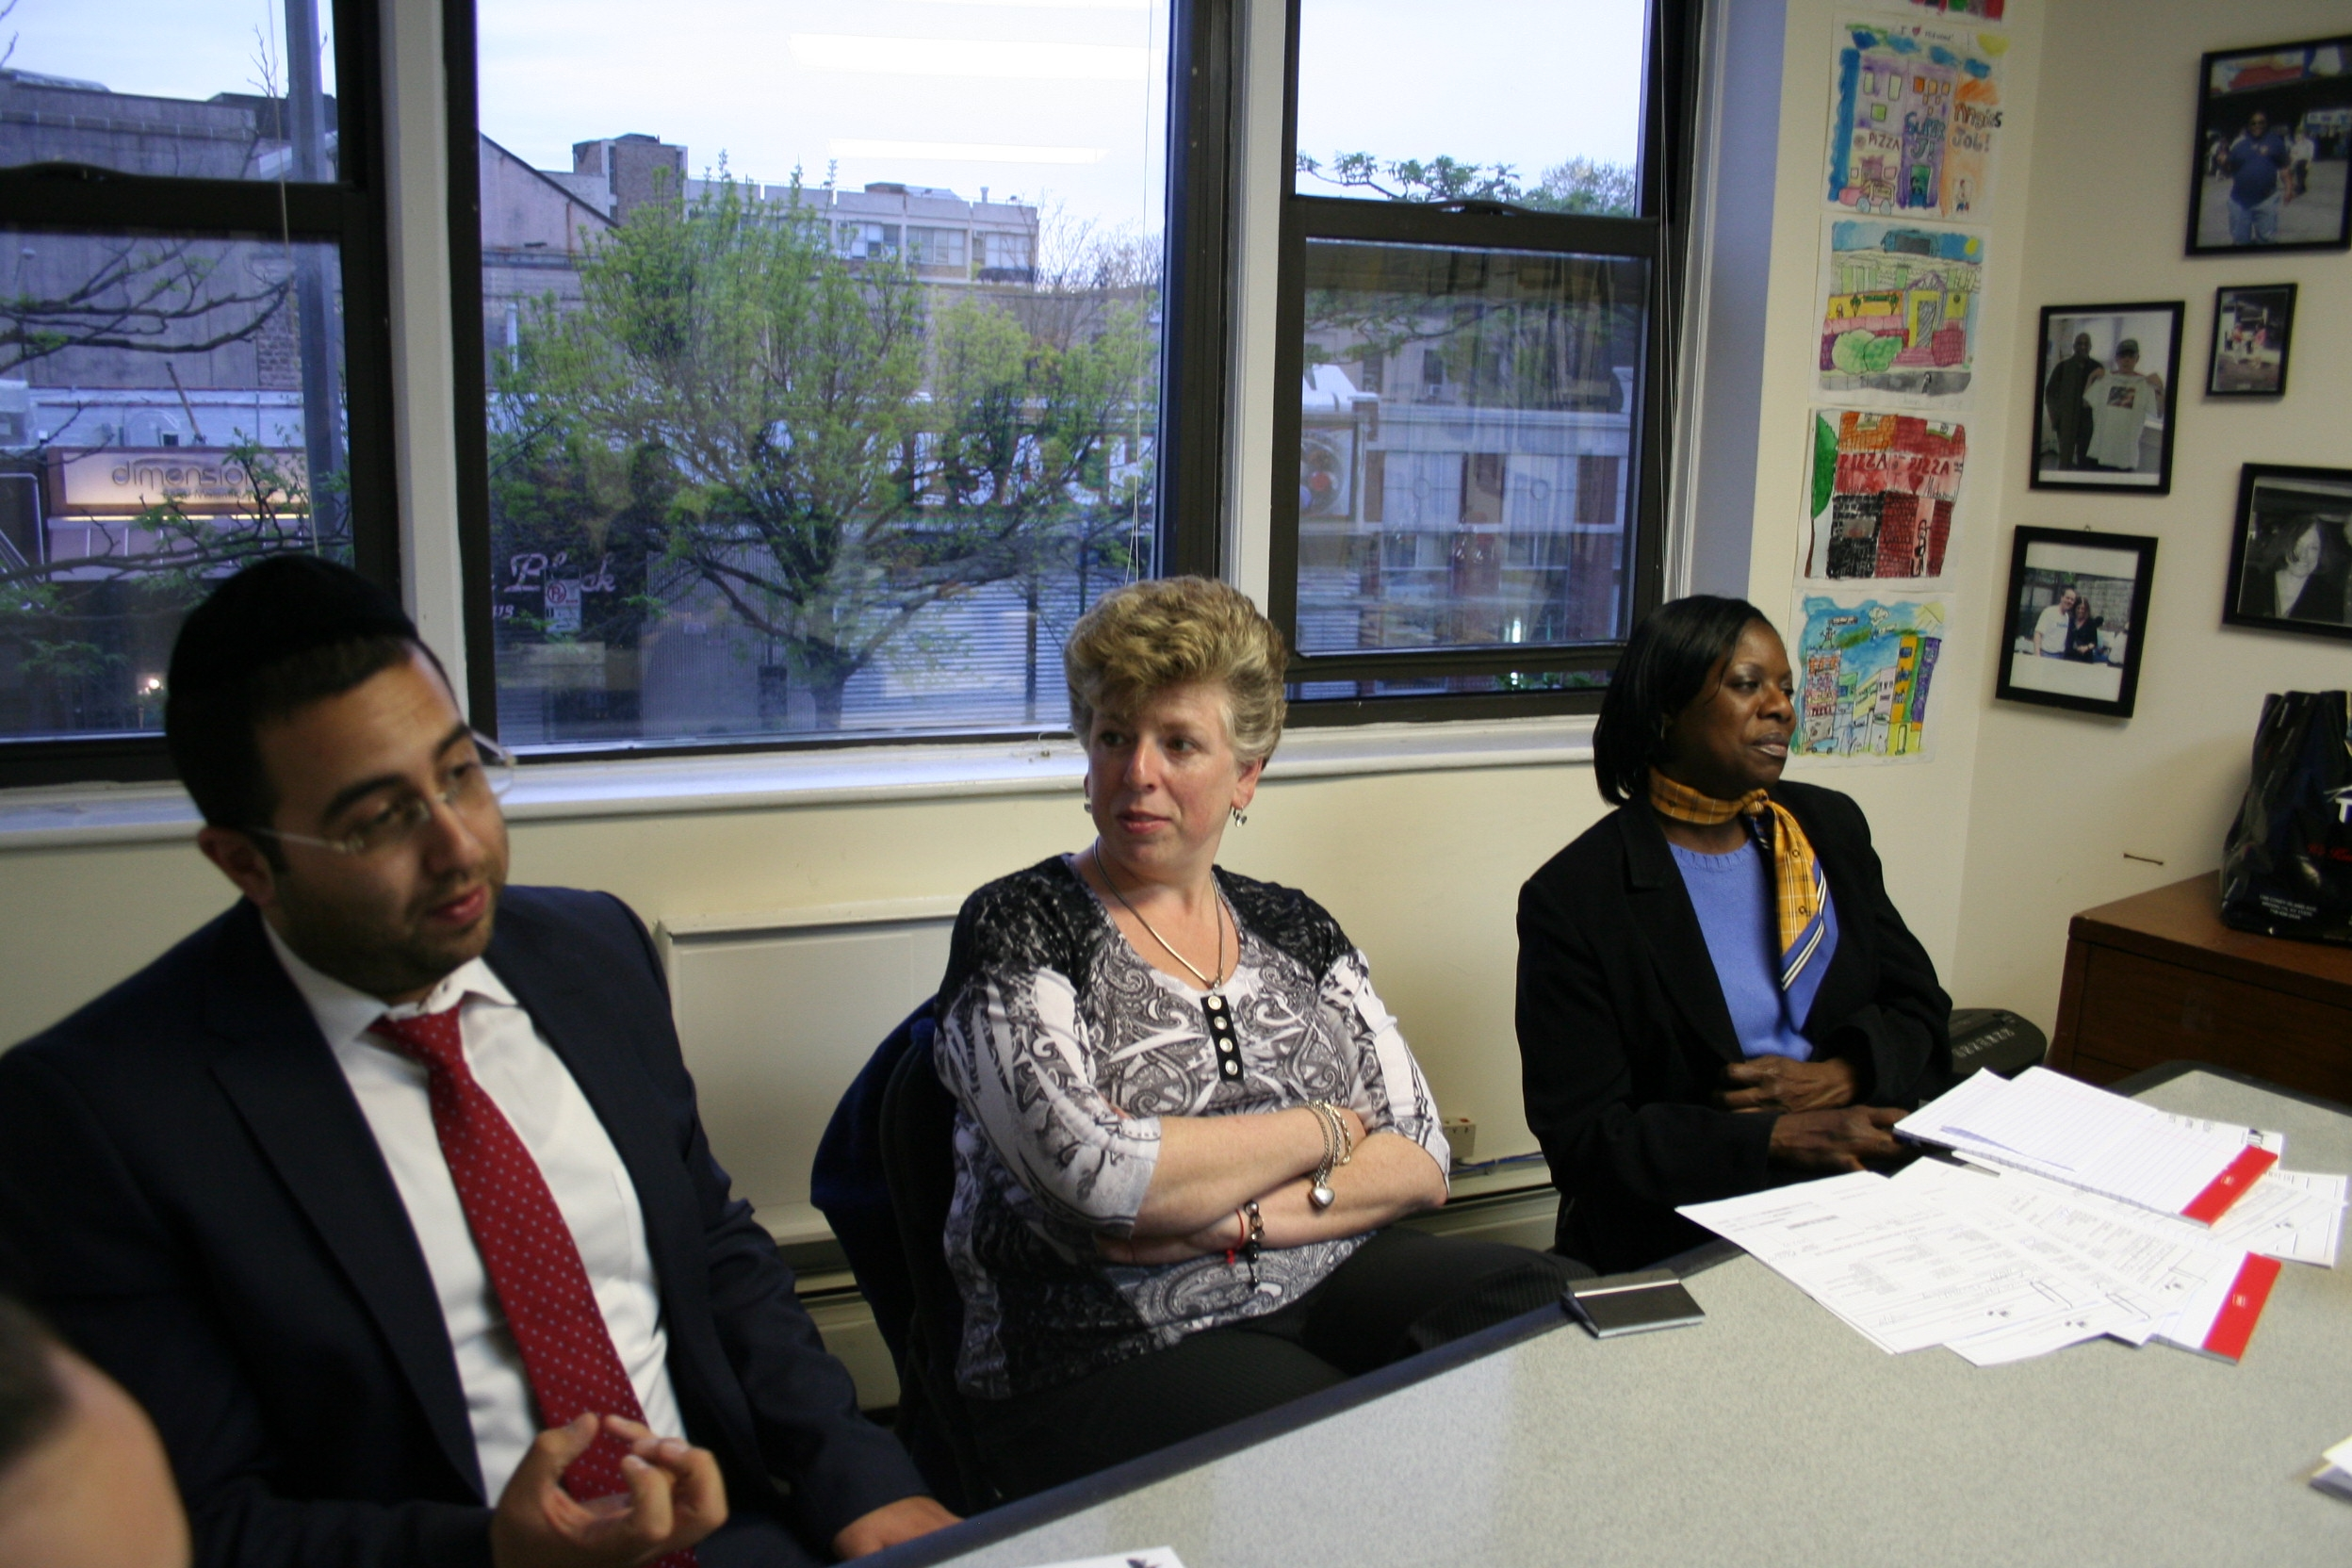 housing workshop highlights midwood development corporation left to right manny gold emt credit counselor julie kvyatkovsky liberty mutual insurance agent and arlene simon chase representative and mdc board